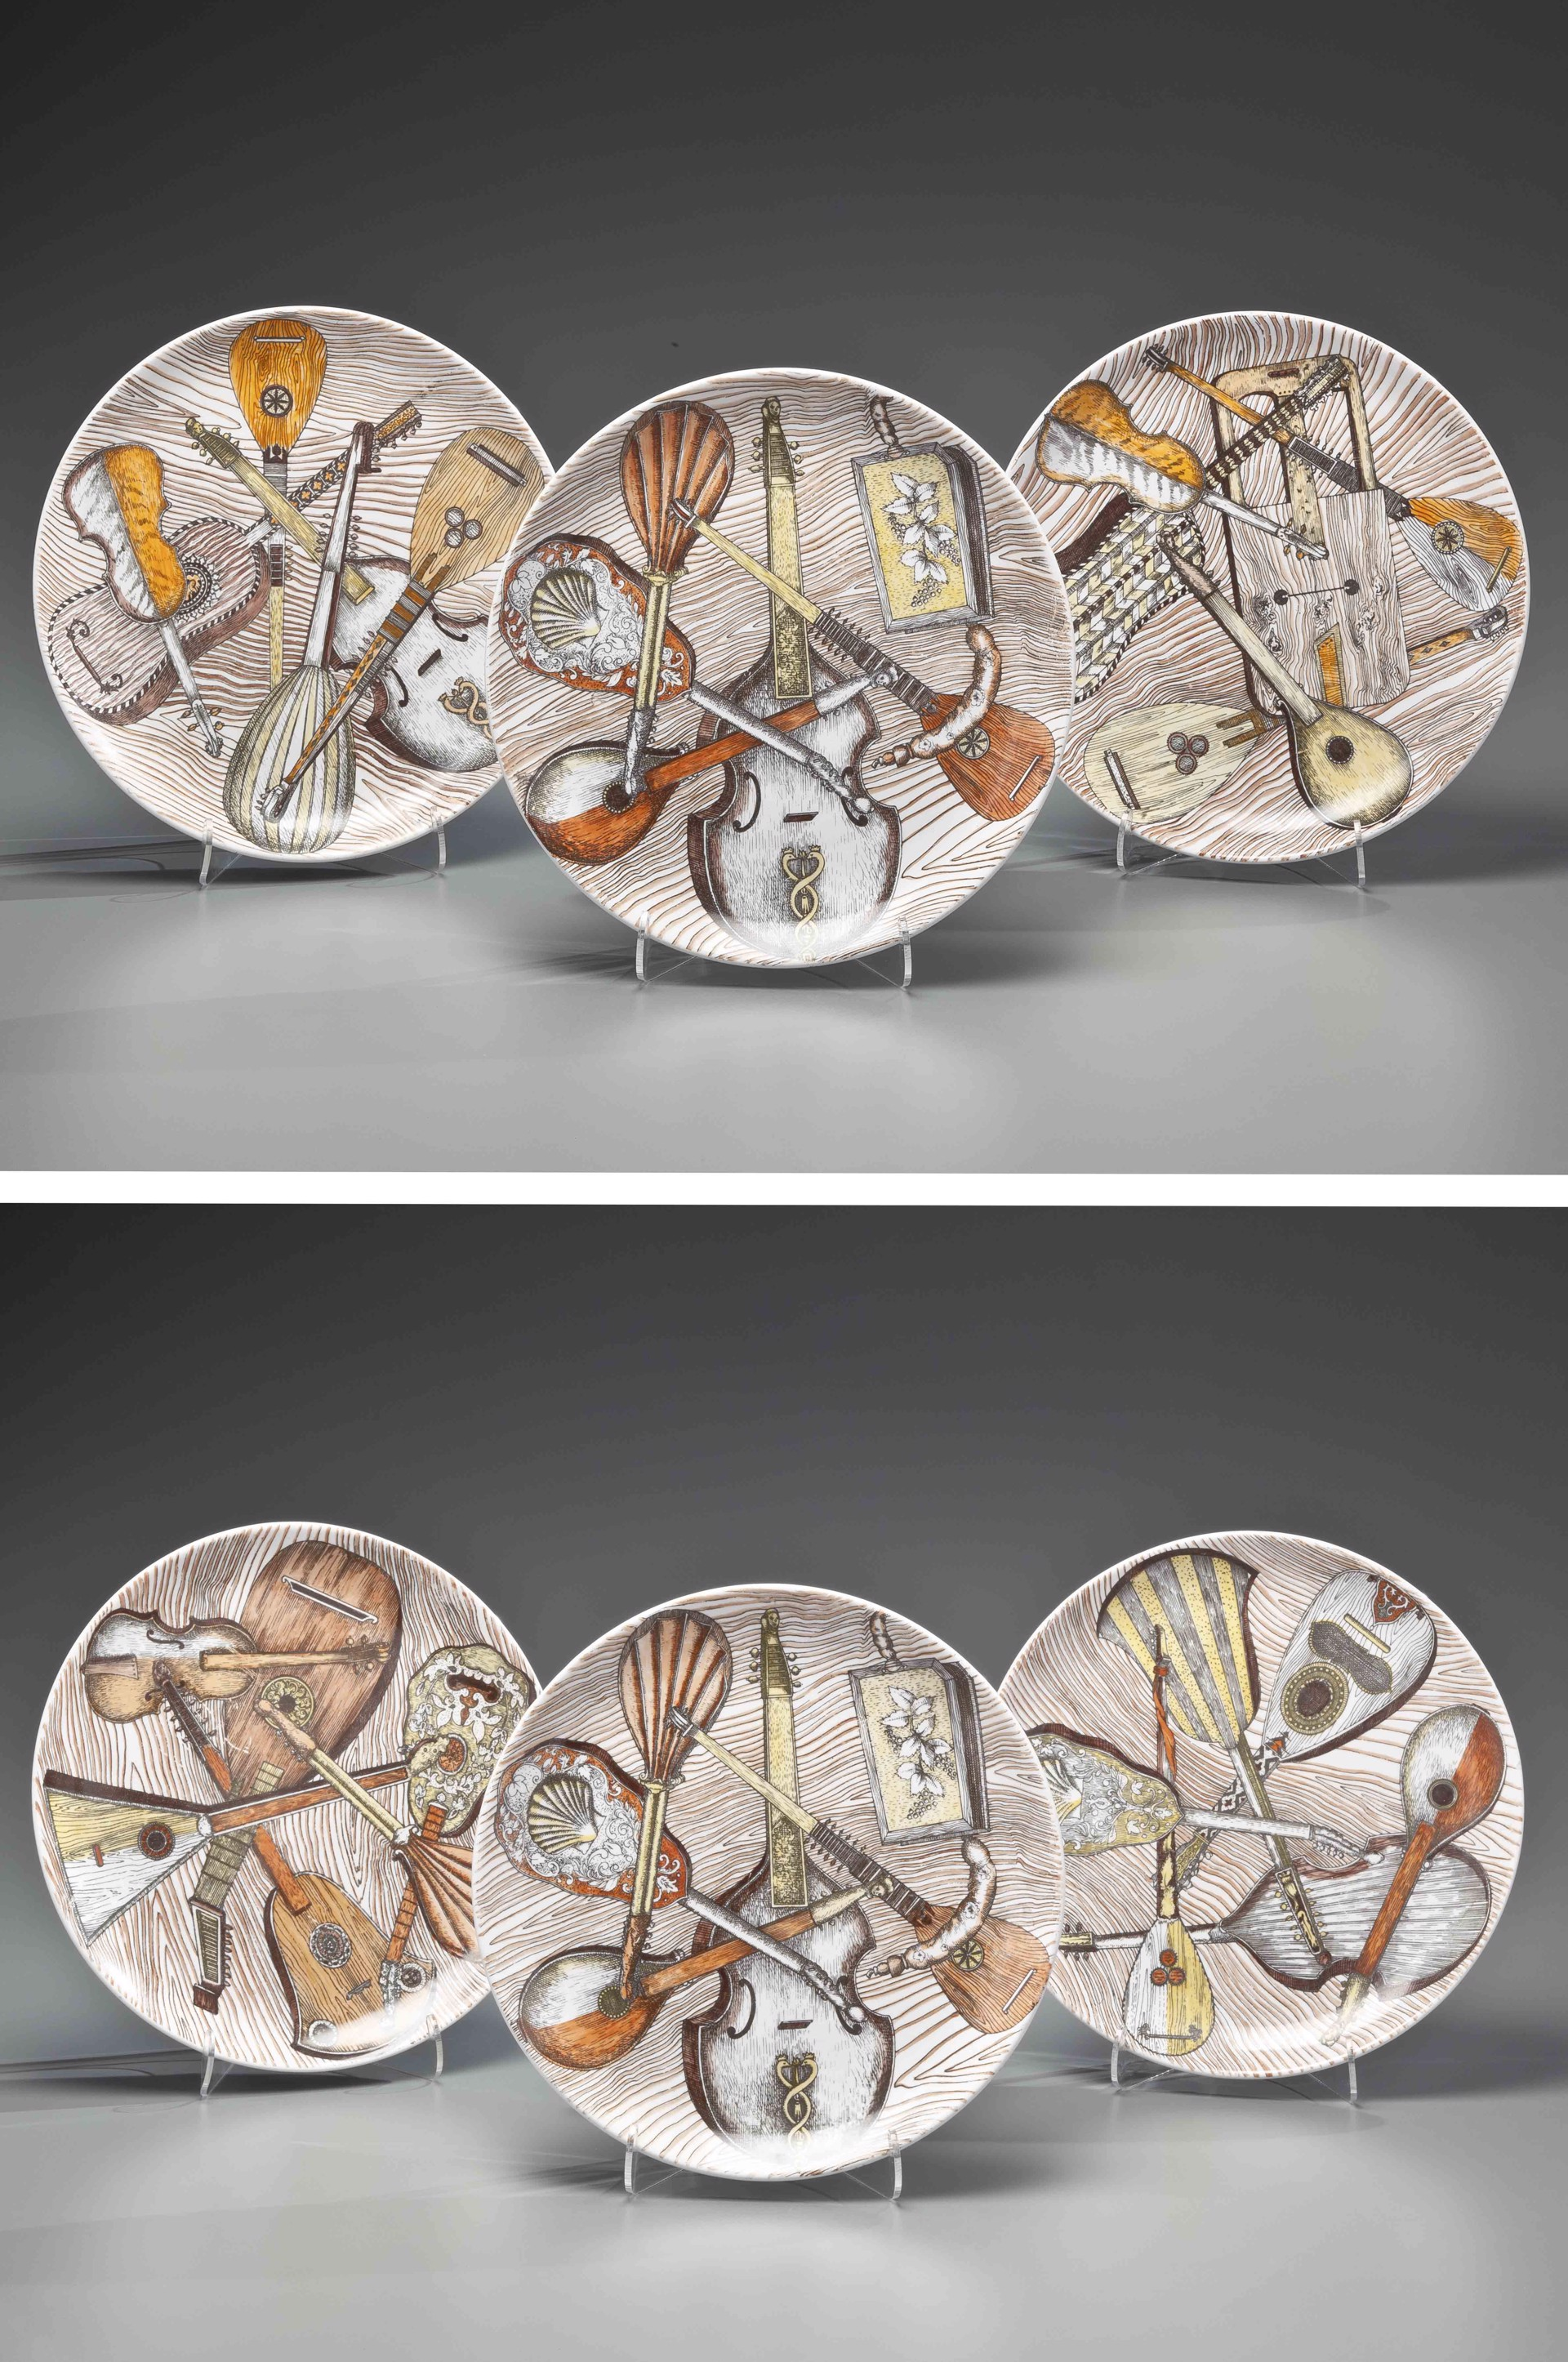 SET OF SIX FORNASETTI-DESIGN TRANSFER-PRINTED PLATES by Piero Fornasetti